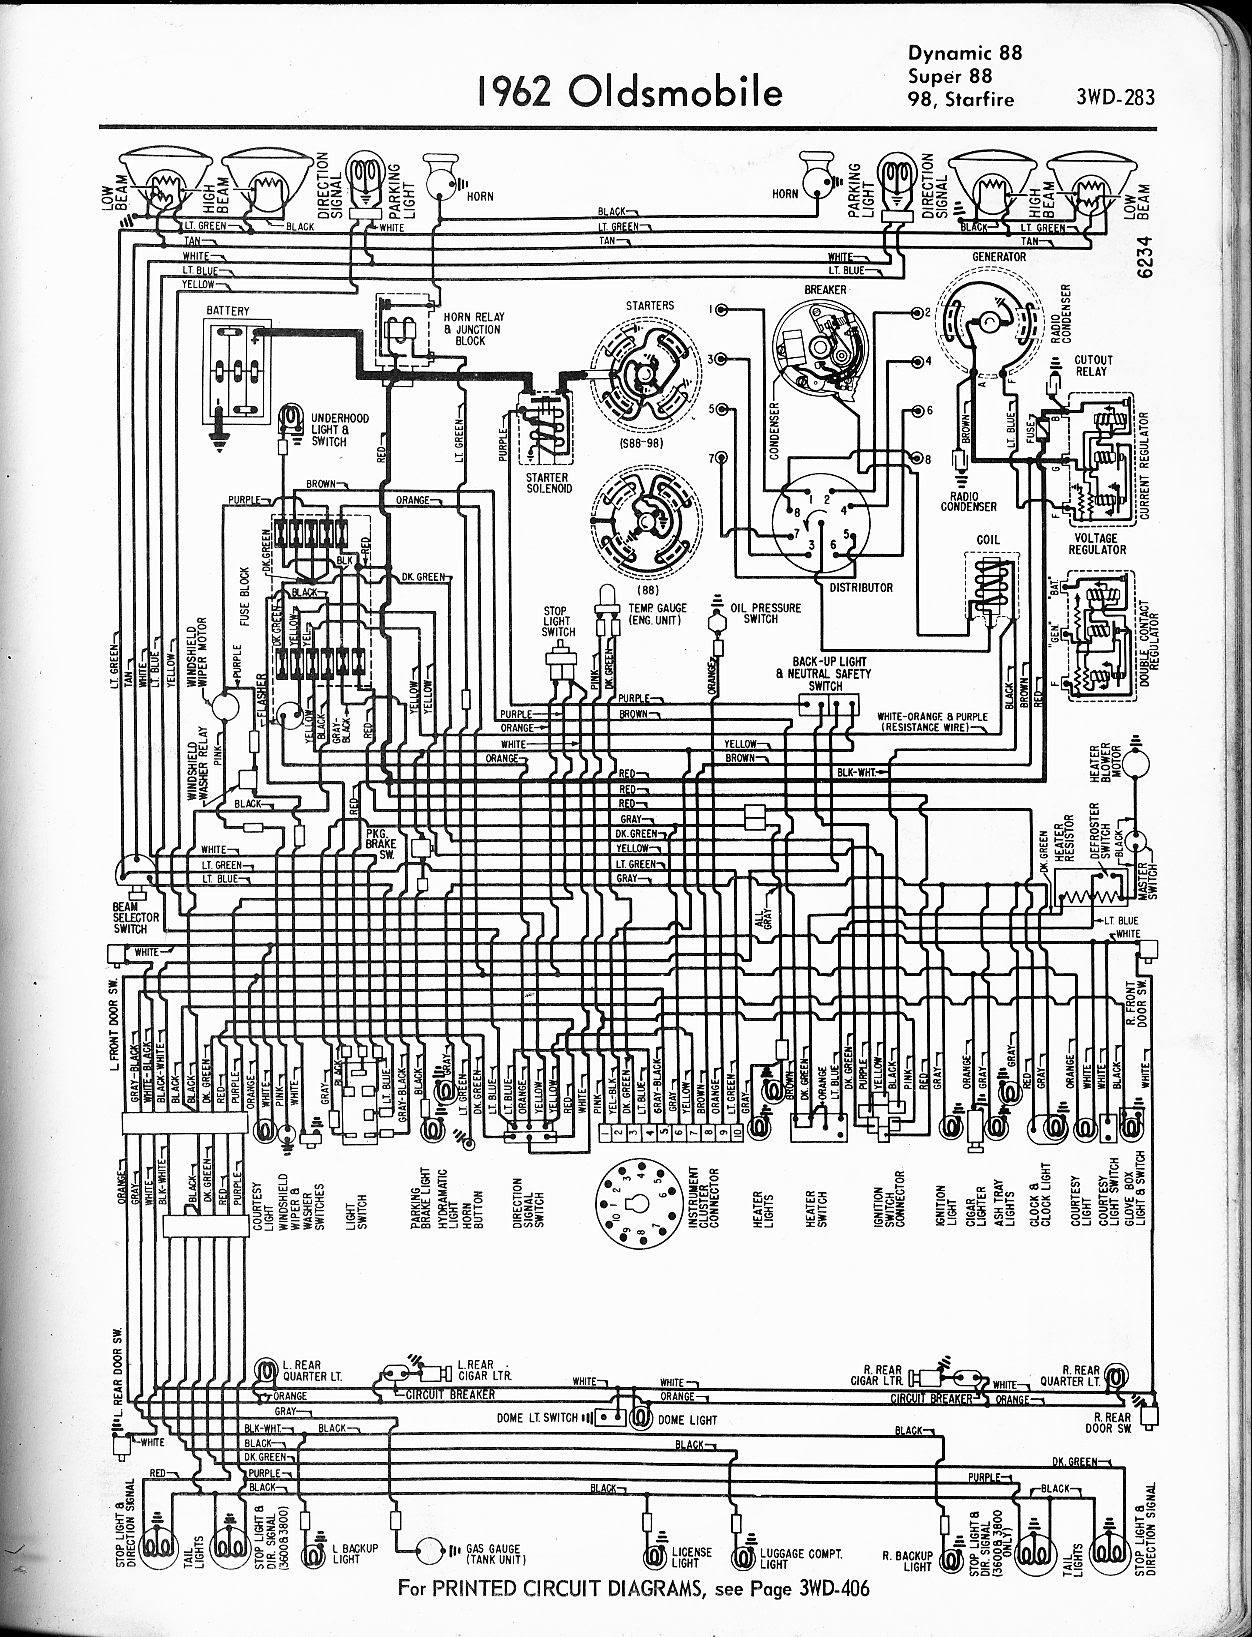 DIAGRAM] Oldsmobile 88 Wiring Diagram FULL Version HD Quality Wiring Diagram  - BCELLDIAGRAMOF.CHAIRE-CTSC.FRheadlight wiring diagram